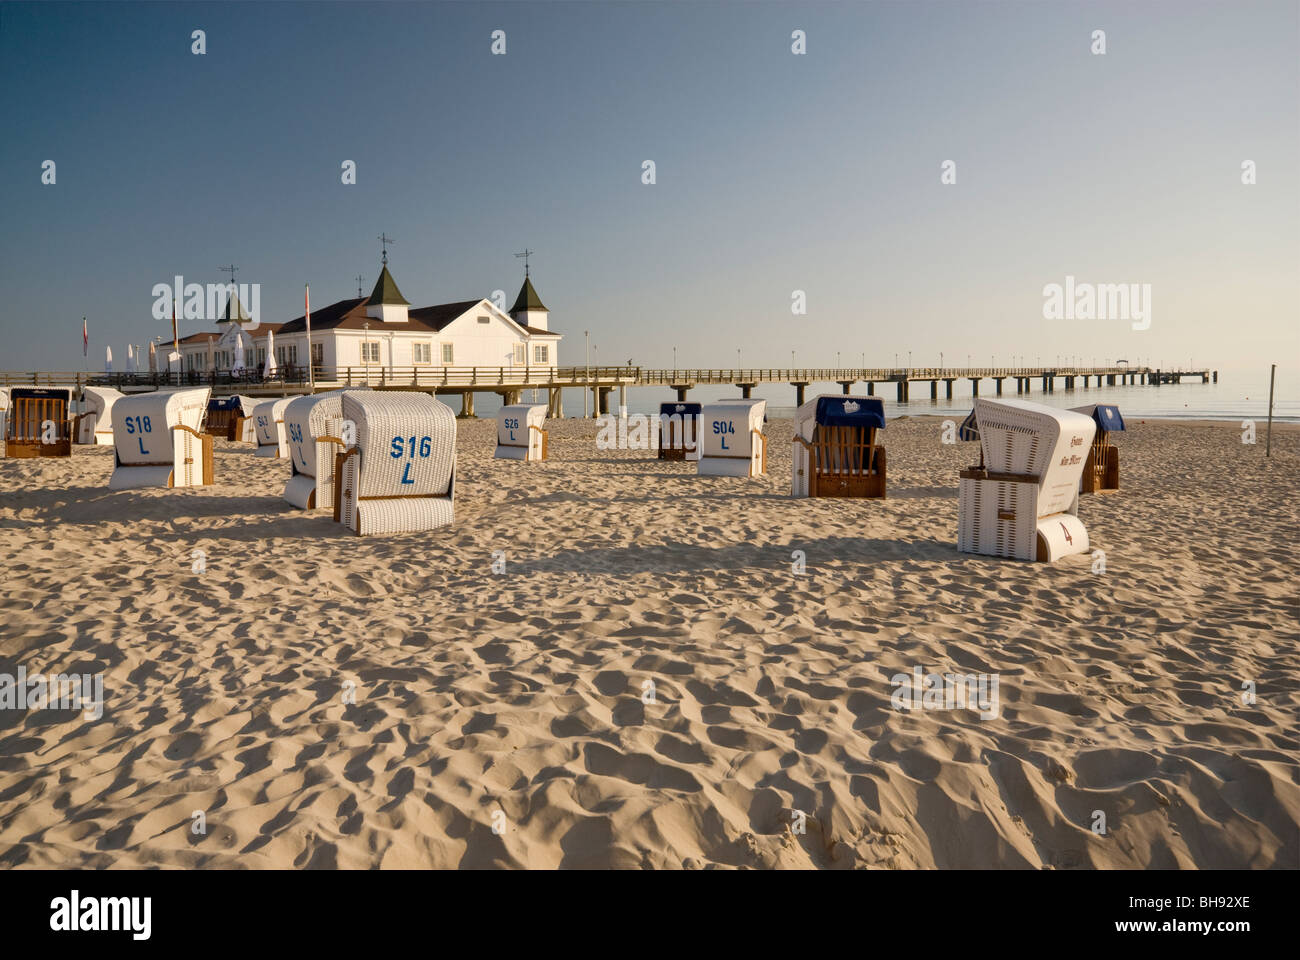 Wicker beach chairs and Seebrücke pier in Ahlbeck at Usedom Island in Mecklenburg-West Pomerania, Germany - Stock Image